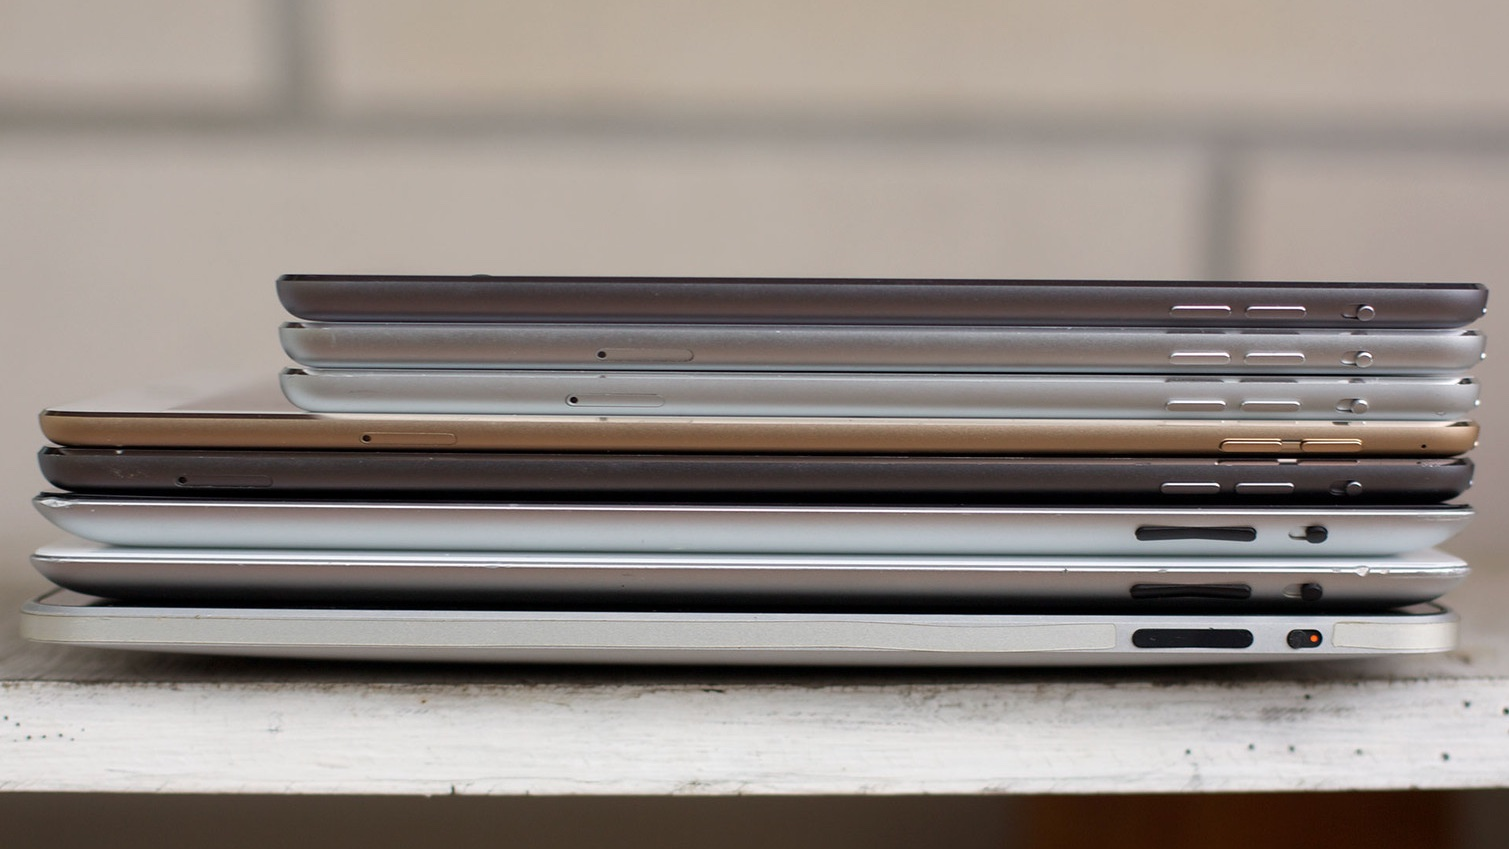 alle-ipads-tot-ipad-air-2